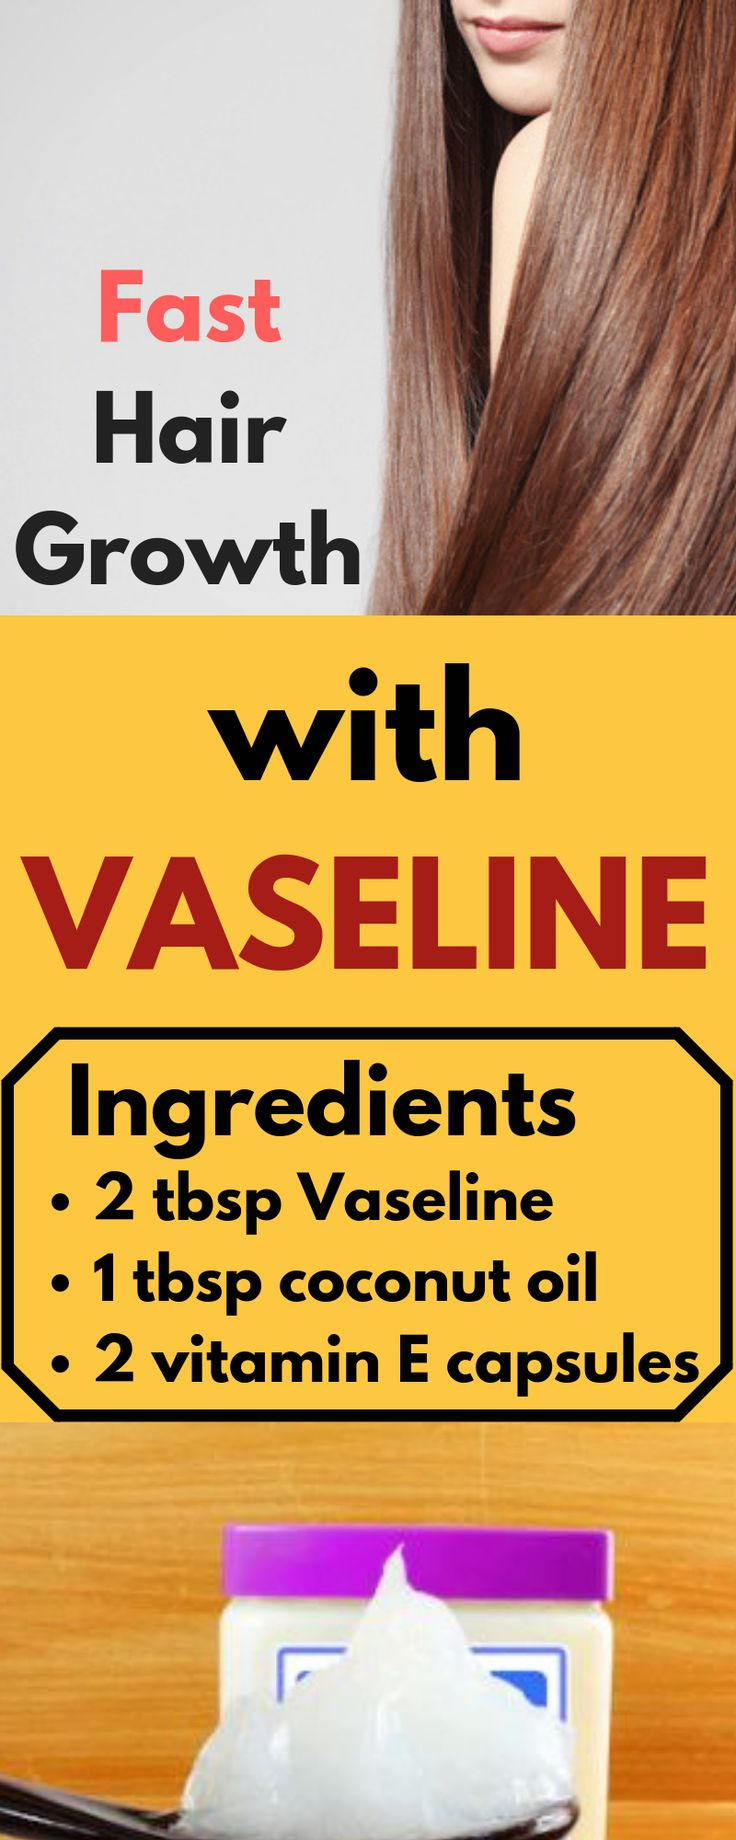 "consultants secret revealed, ""Glorious pure treatment for quick hair progress with Vaseline"""